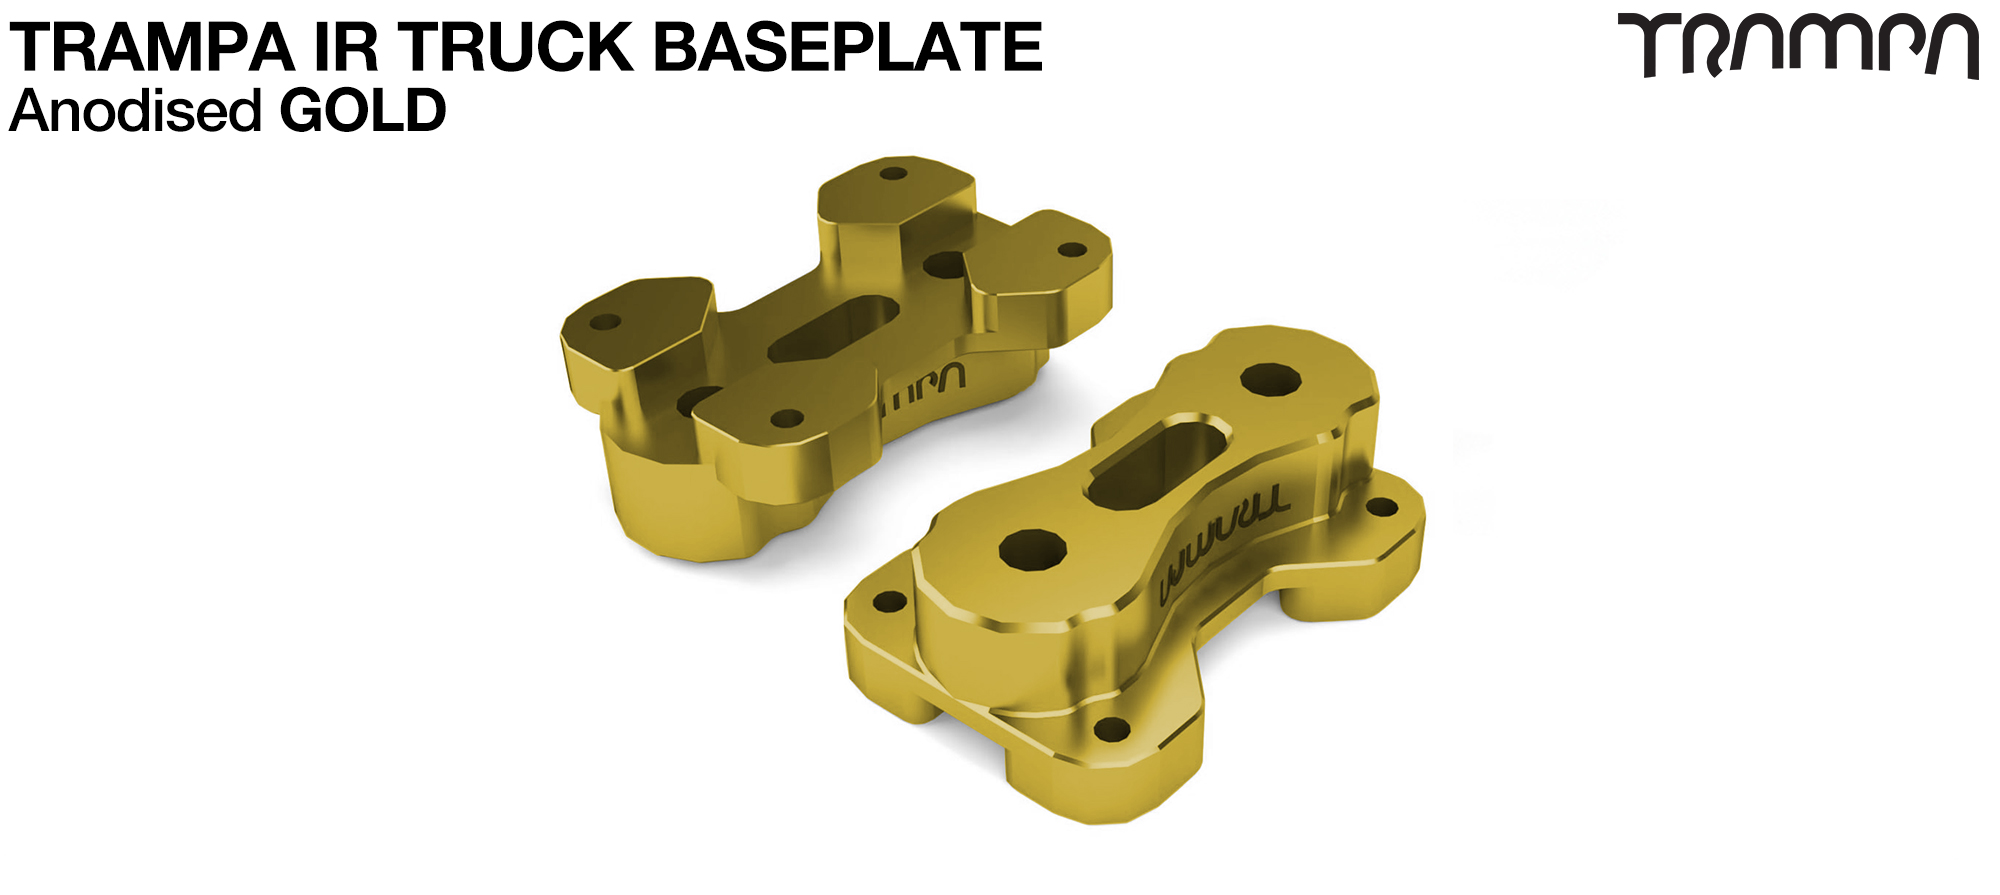 TRAMPA IR BASEPLATE - CNC Precision made TRAMPA IR Trucks are super light & Packed with performance - GOLD